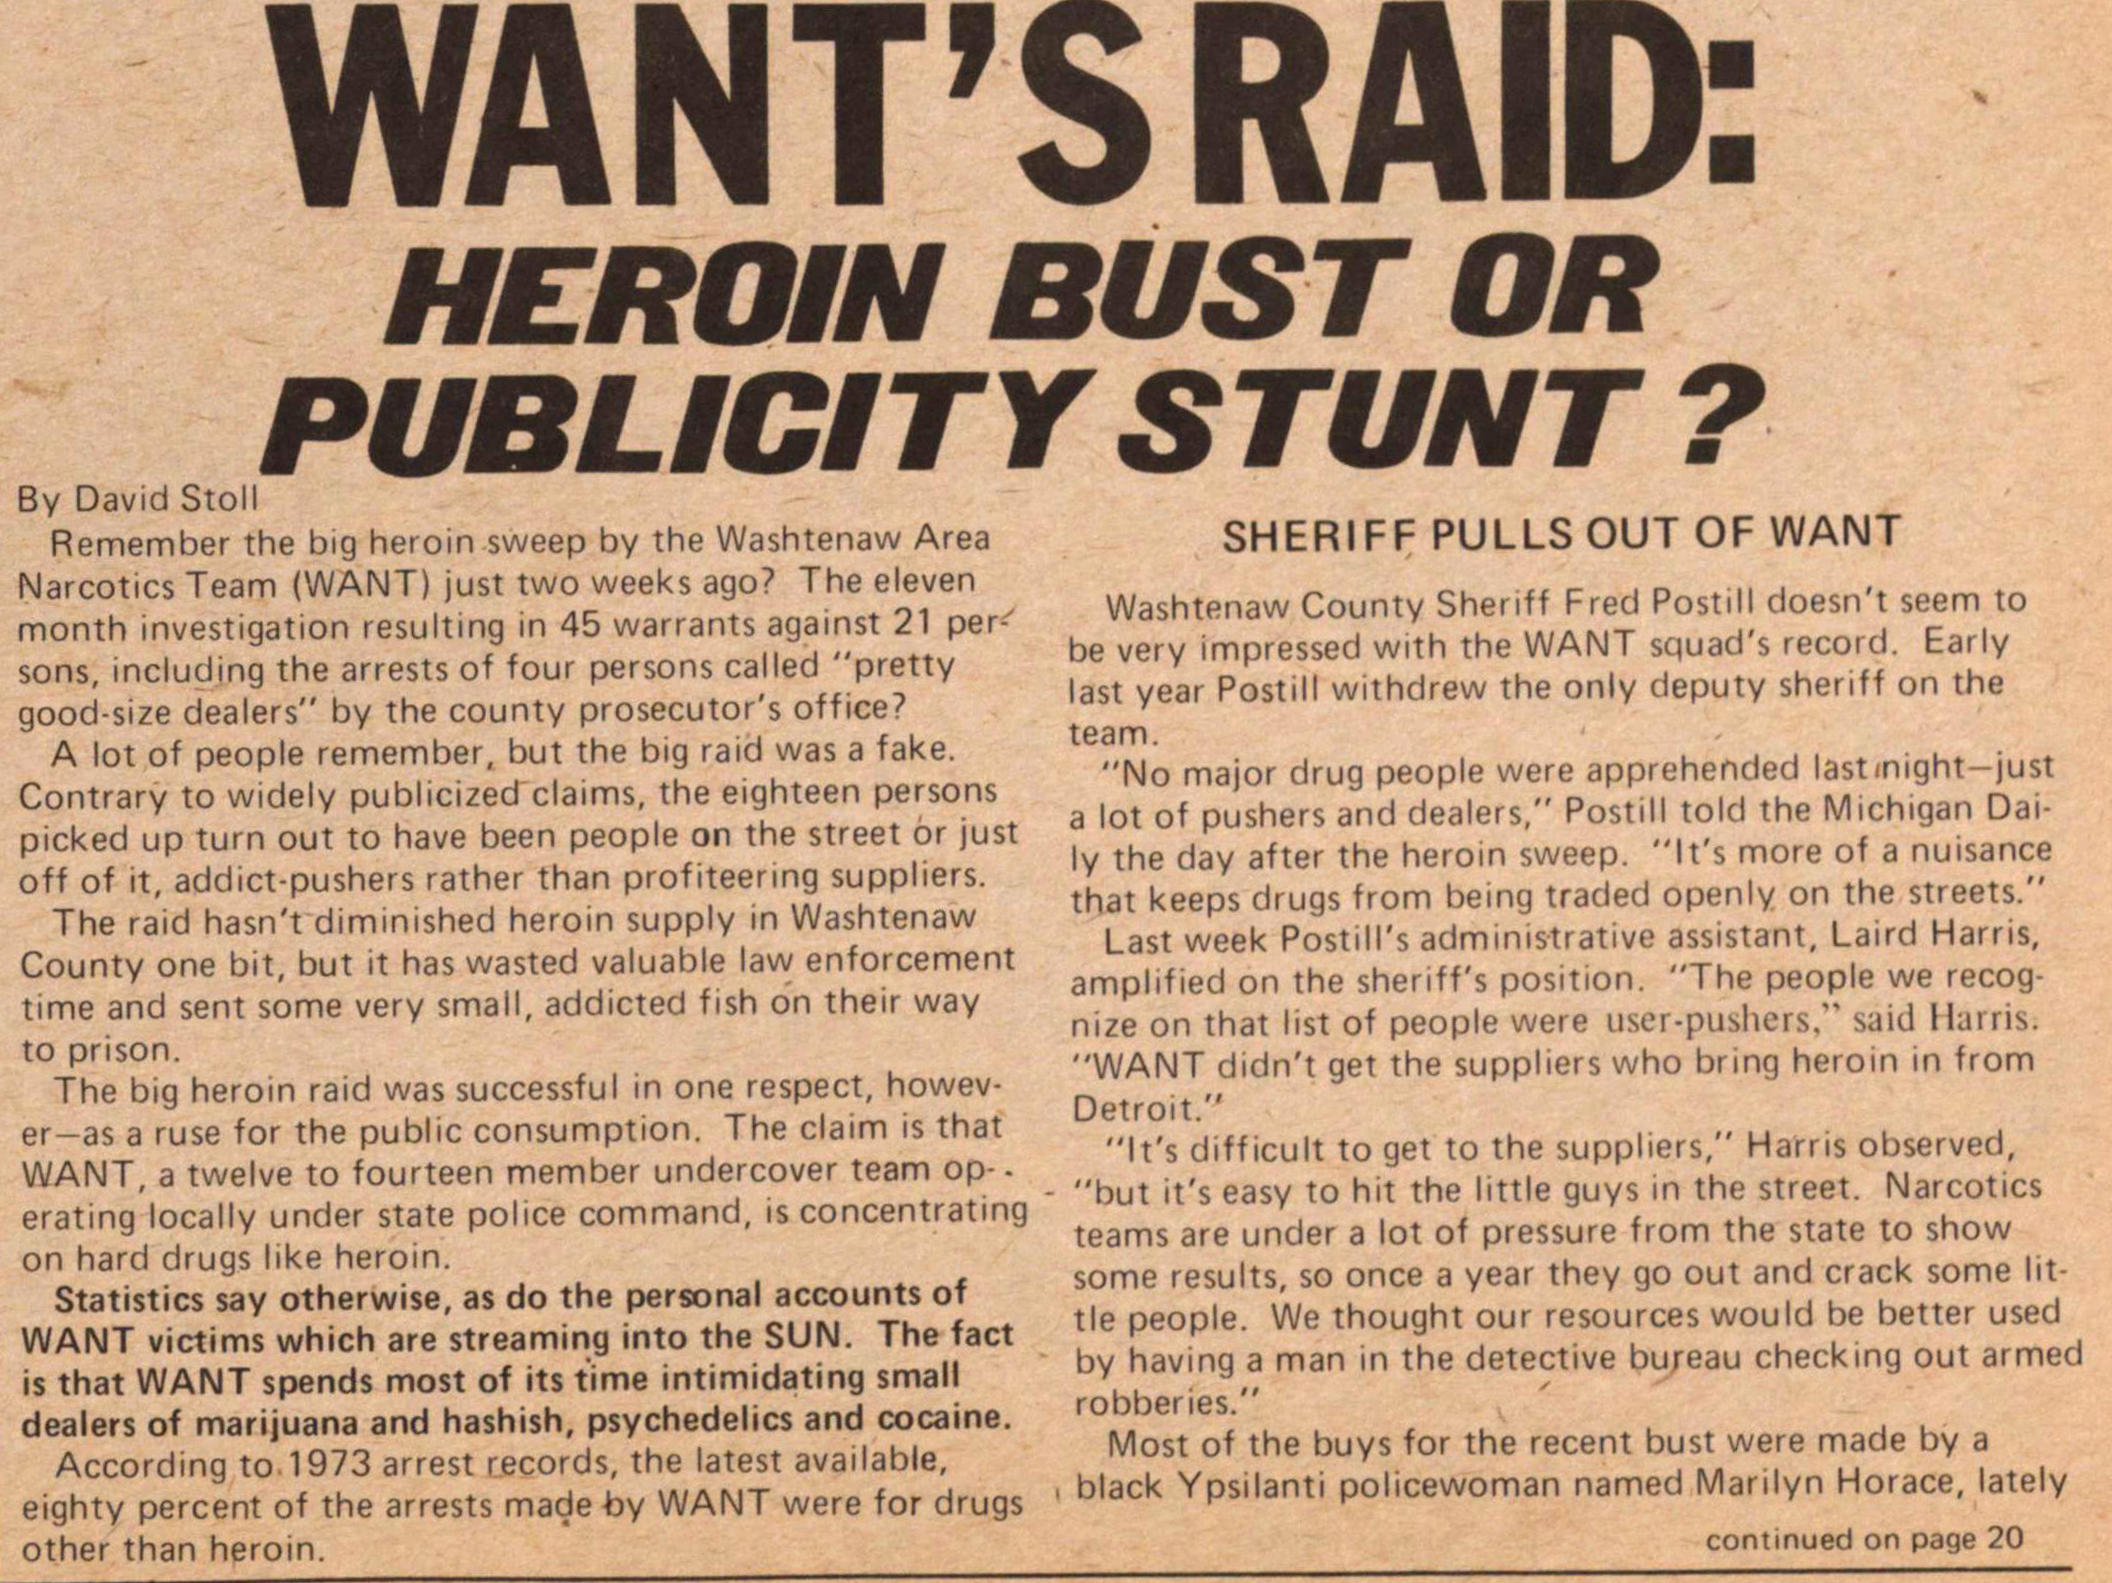 Want's Raid: Heroin Bust Or Publicity Stunt? image